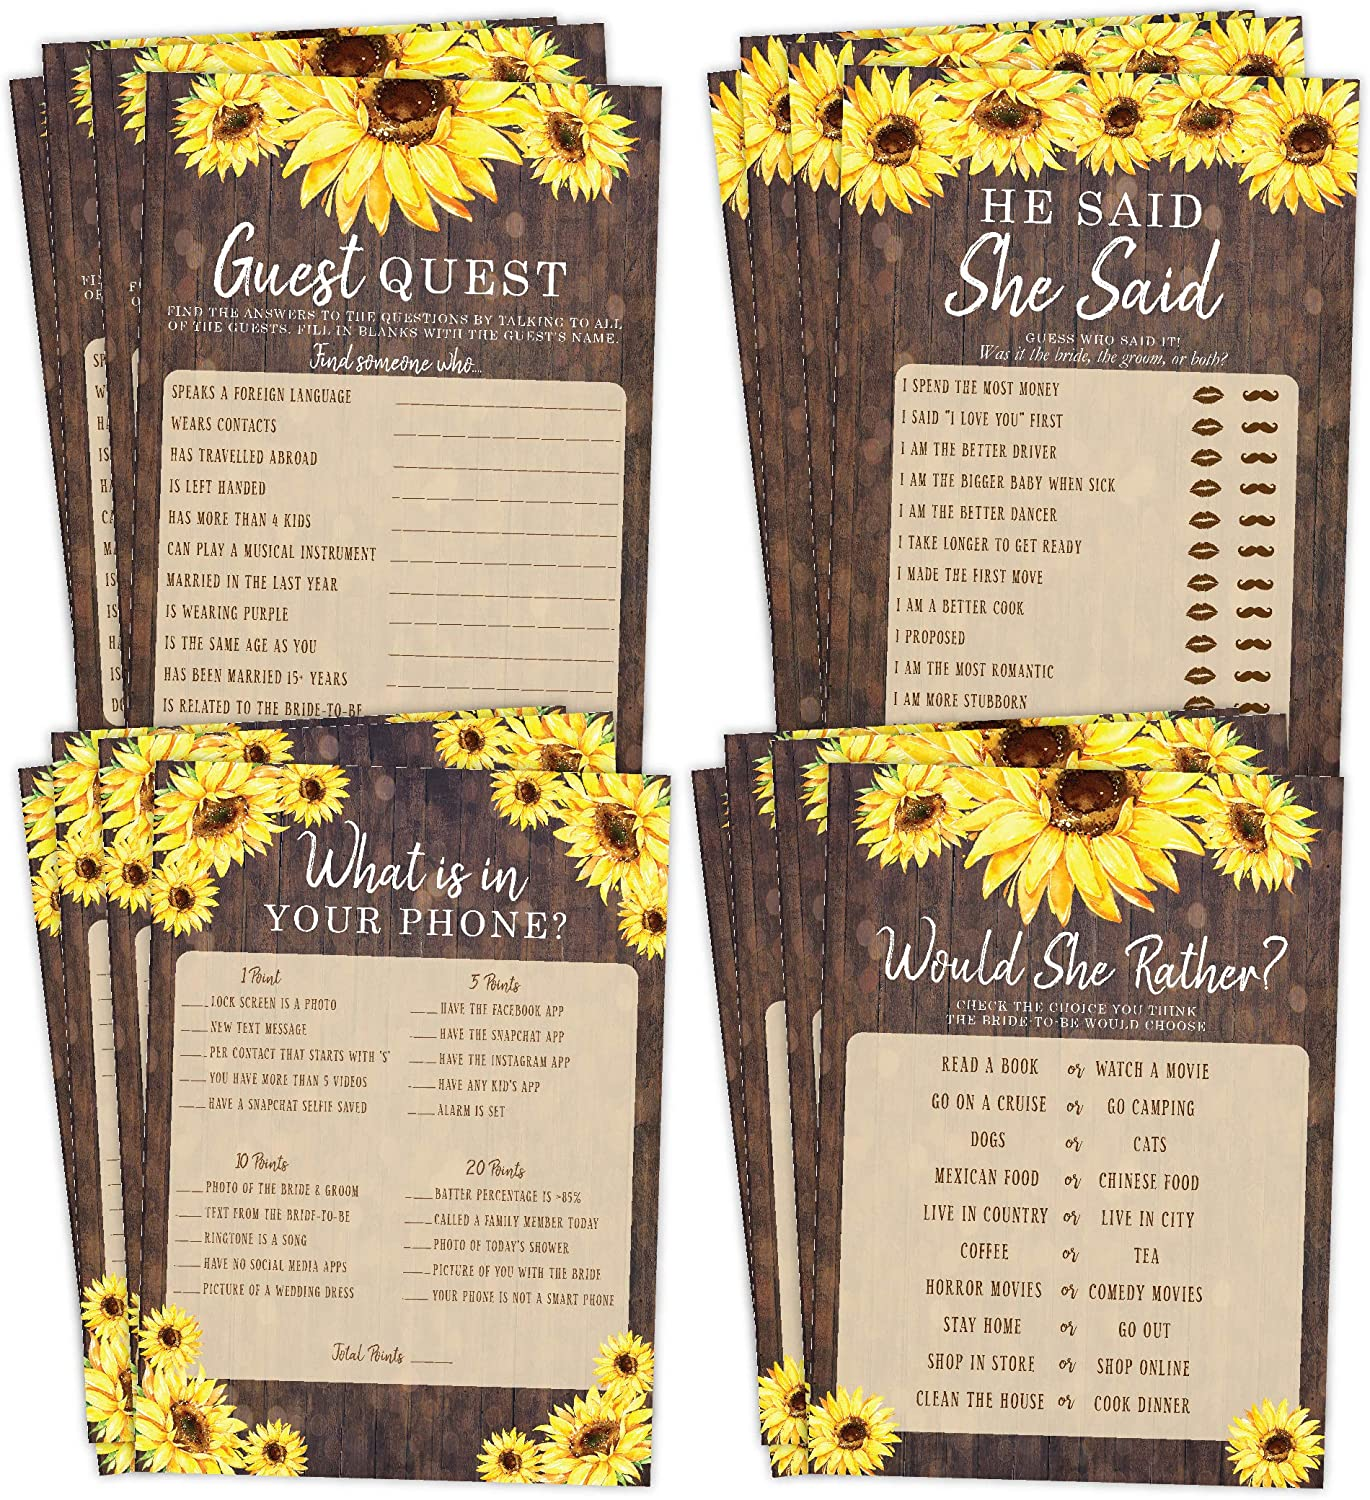 Sunflower Bridal Shower Bachelorette Games, He Said She Said, Find The Guest Quest, Would She Rather, Phone Game, 25 games each